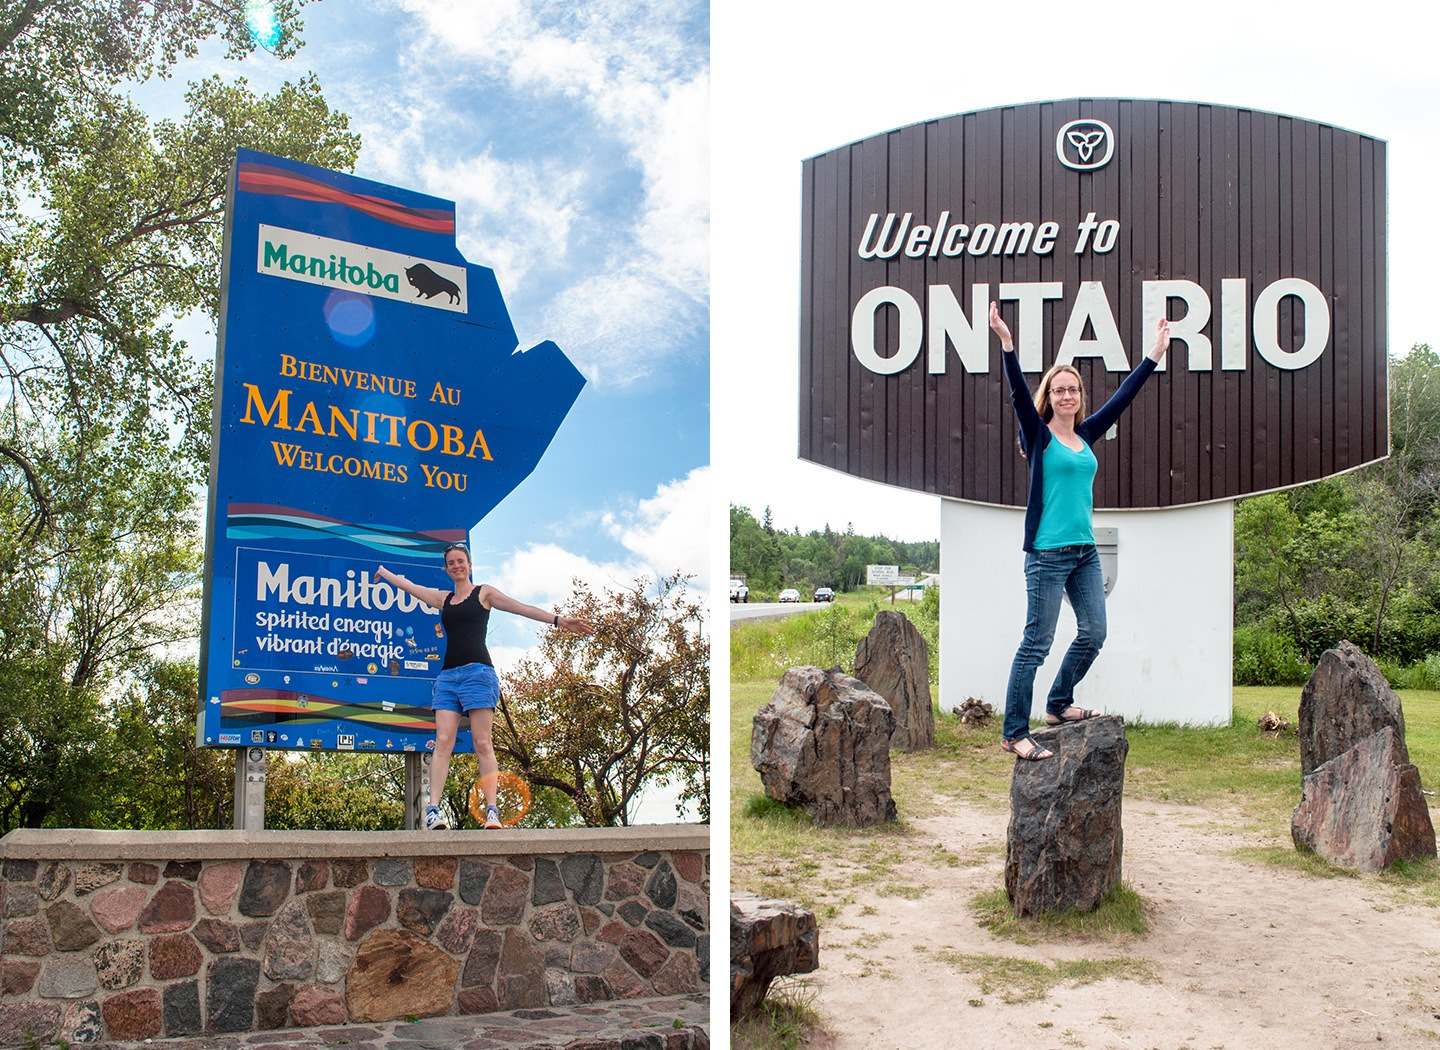 Province signs along the road across Canada